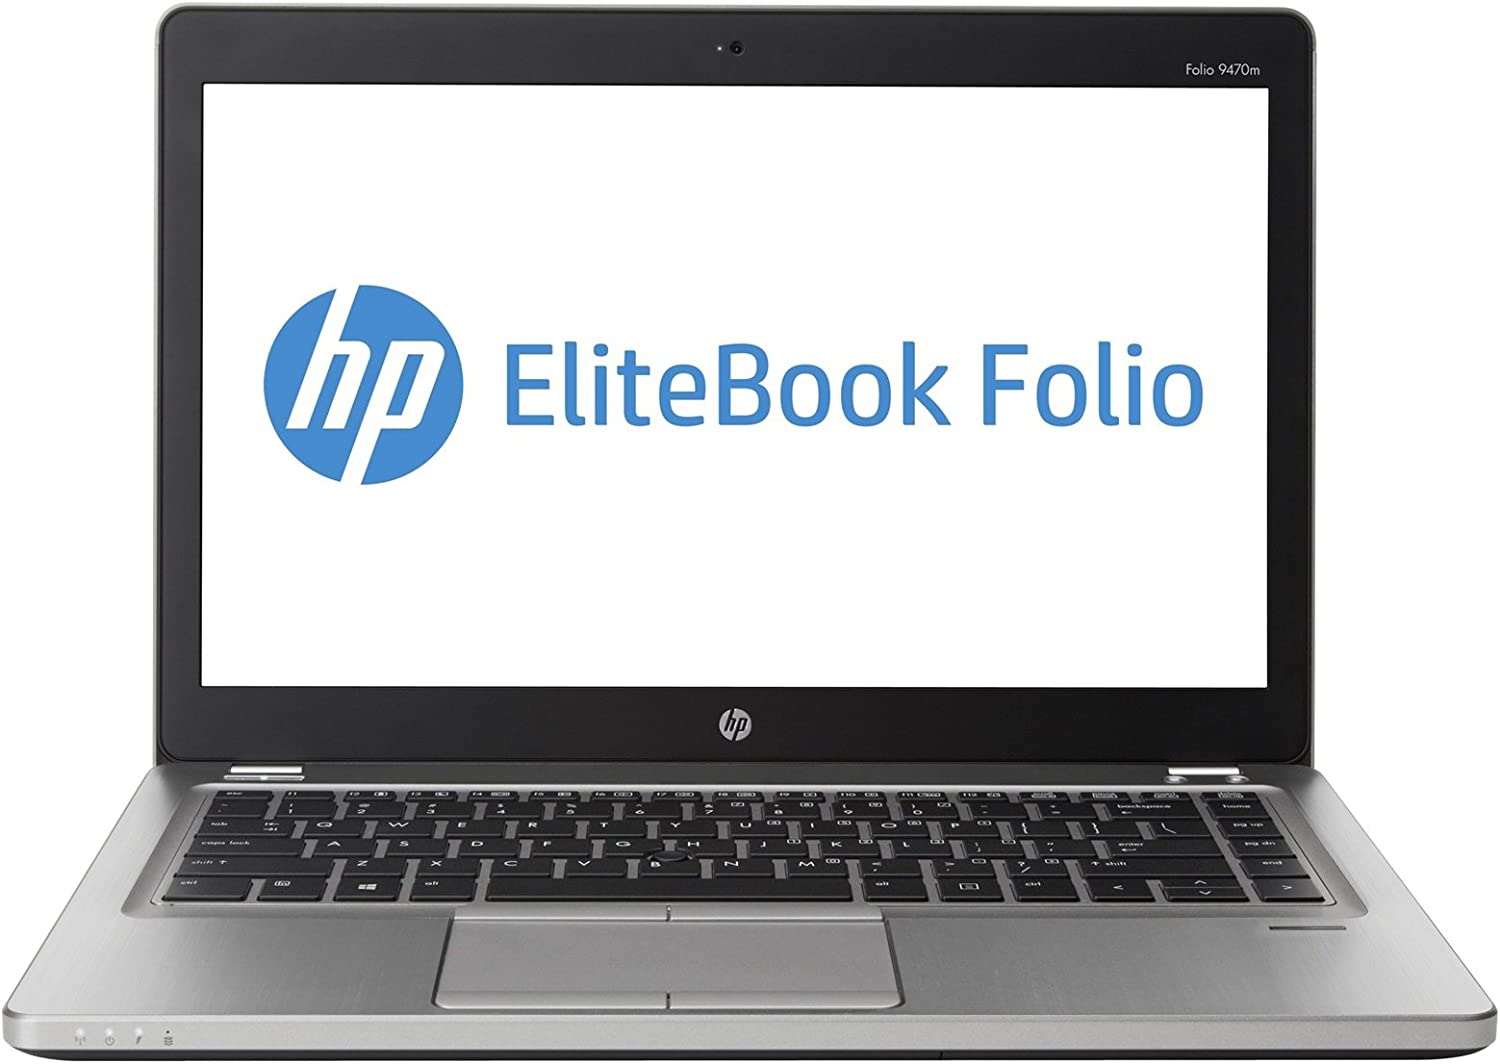 "HP EliteBook Folio 9470M 14"" Intel Core i5-3427U 1.8GHz 8GB 128GB SSD Windows 10 Pro (Renewed)"